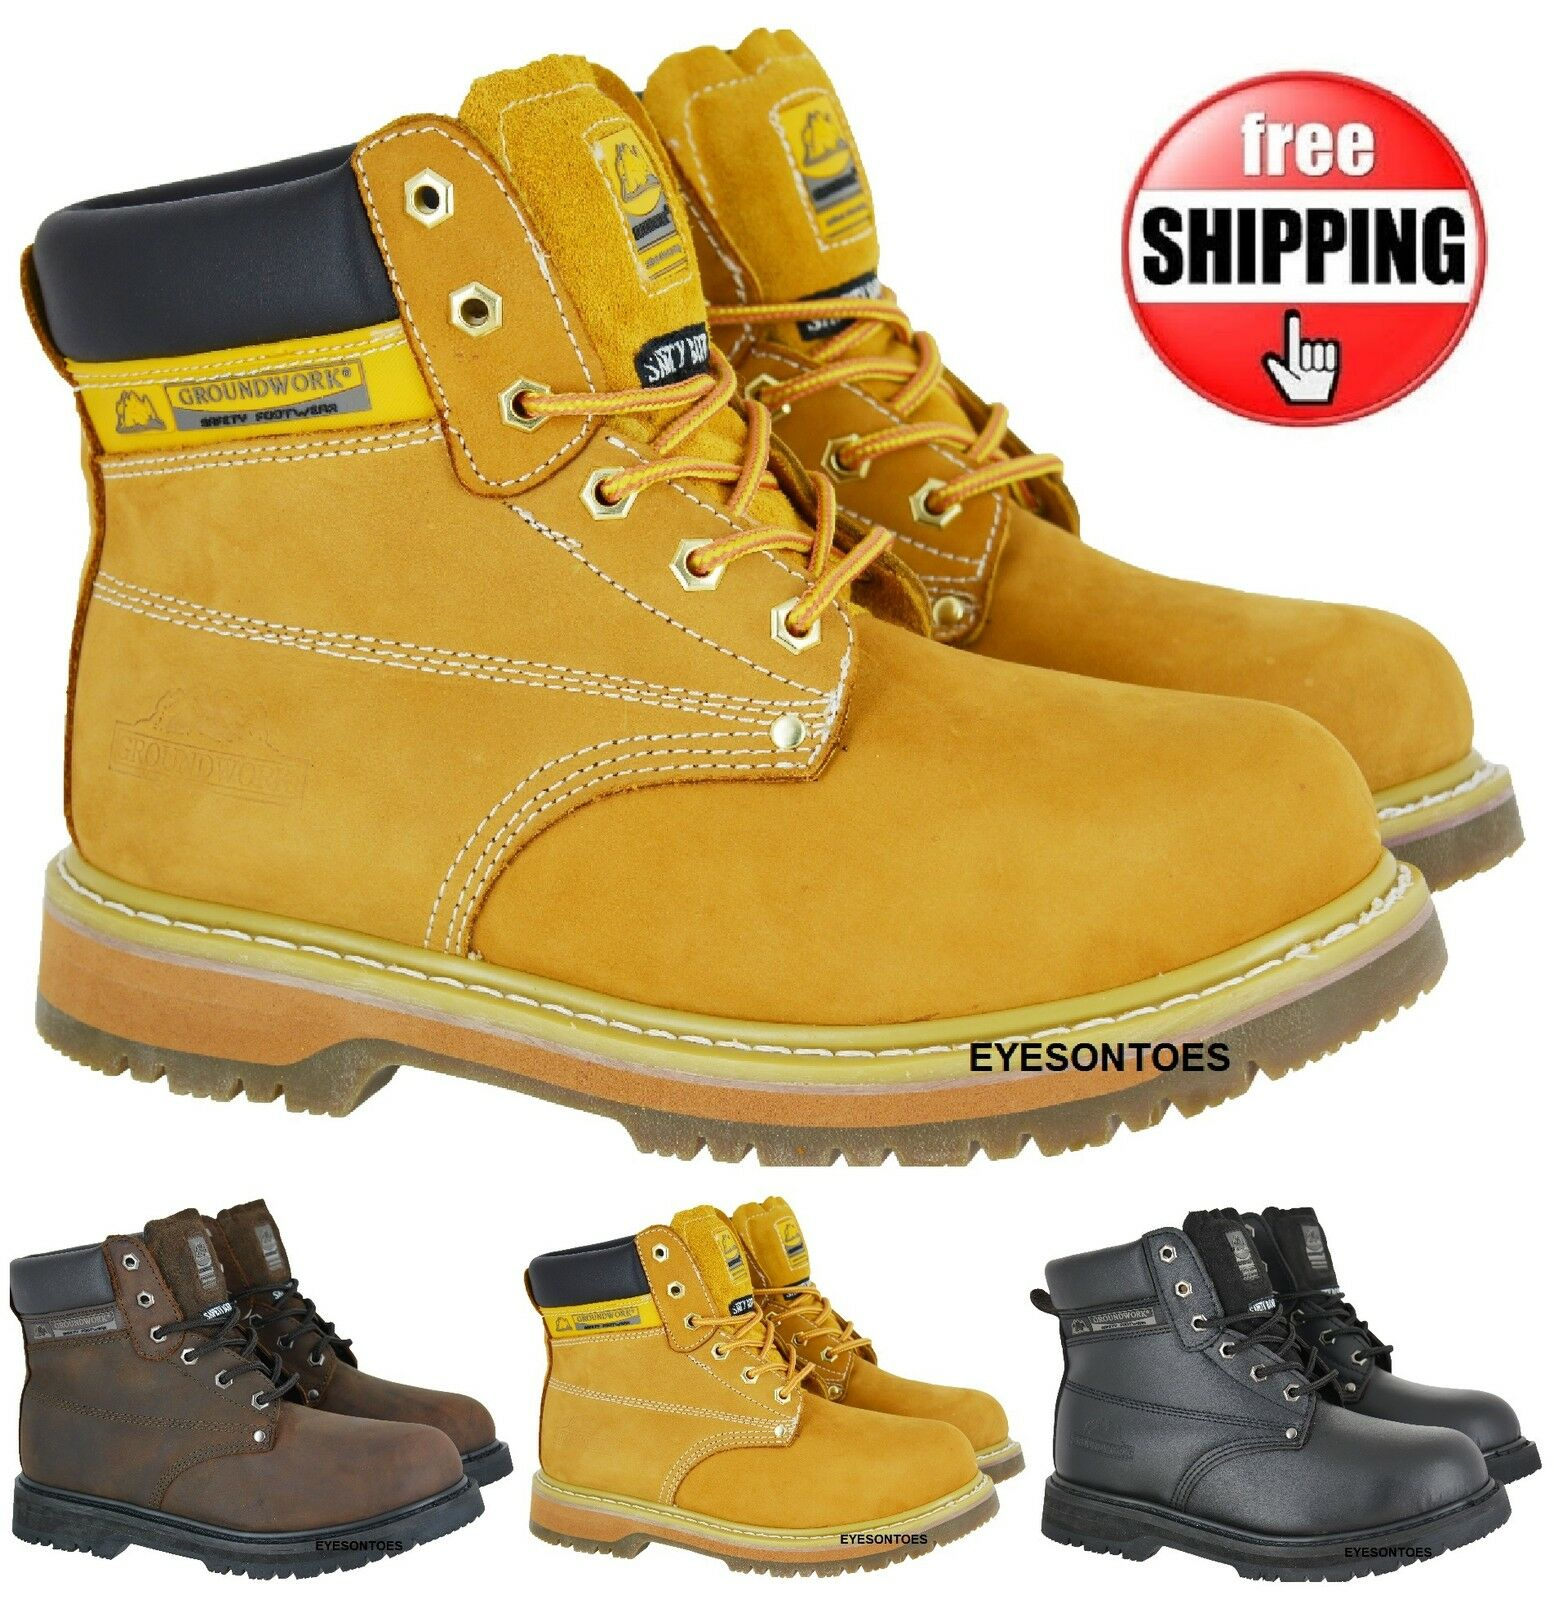 MENS COMFORT WORK SAFETY BOOTS NON SLIP SOLE LEATHER STEEL TOE CAPS NEW LACE UP